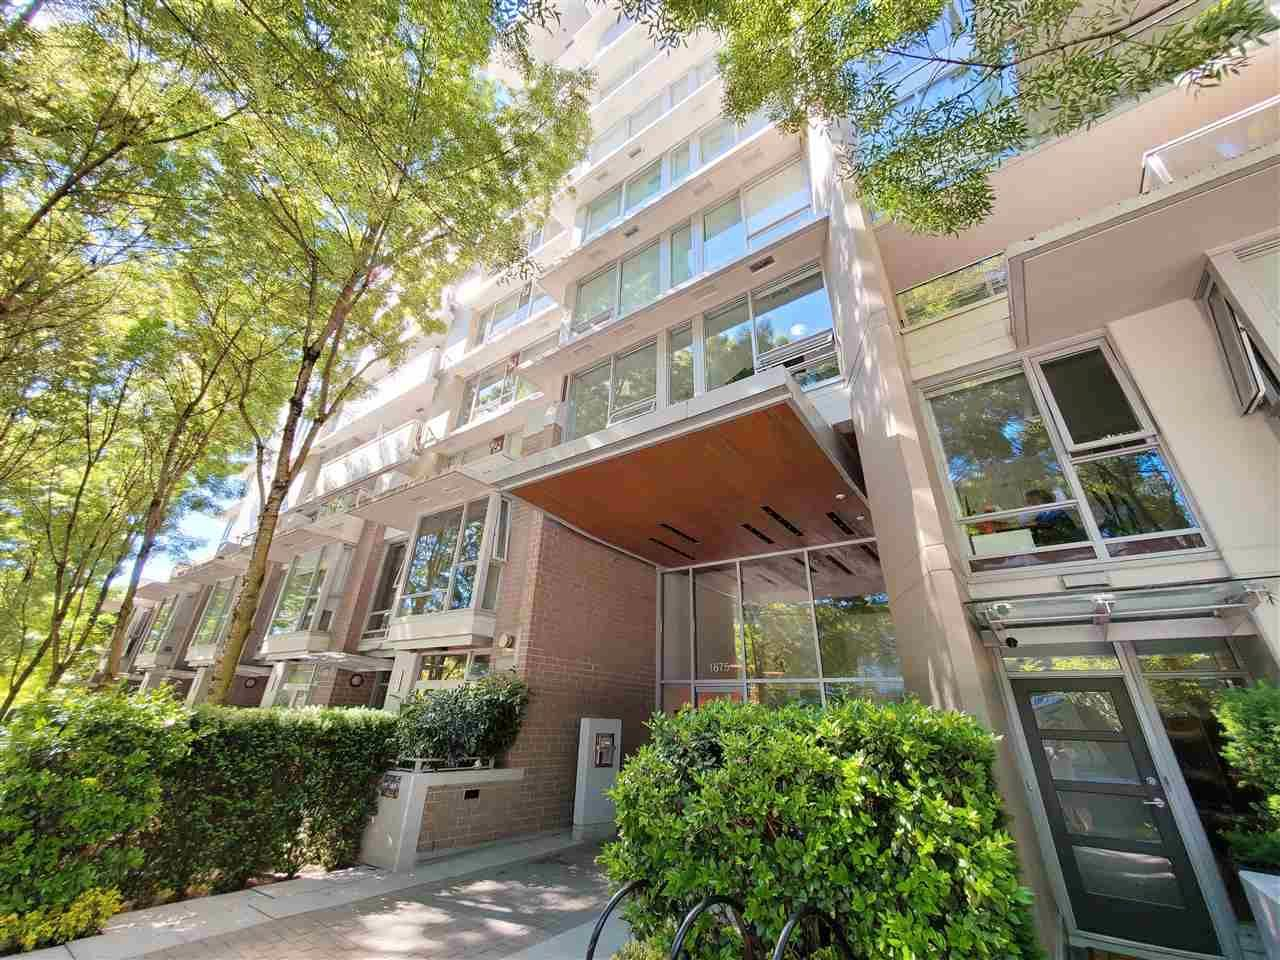 """Main Photo: 102 1675 W 8TH Avenue in Vancouver: Fairview VW Condo for sale in """"Camera"""" (Vancouver West)  : MLS®# R2590359"""